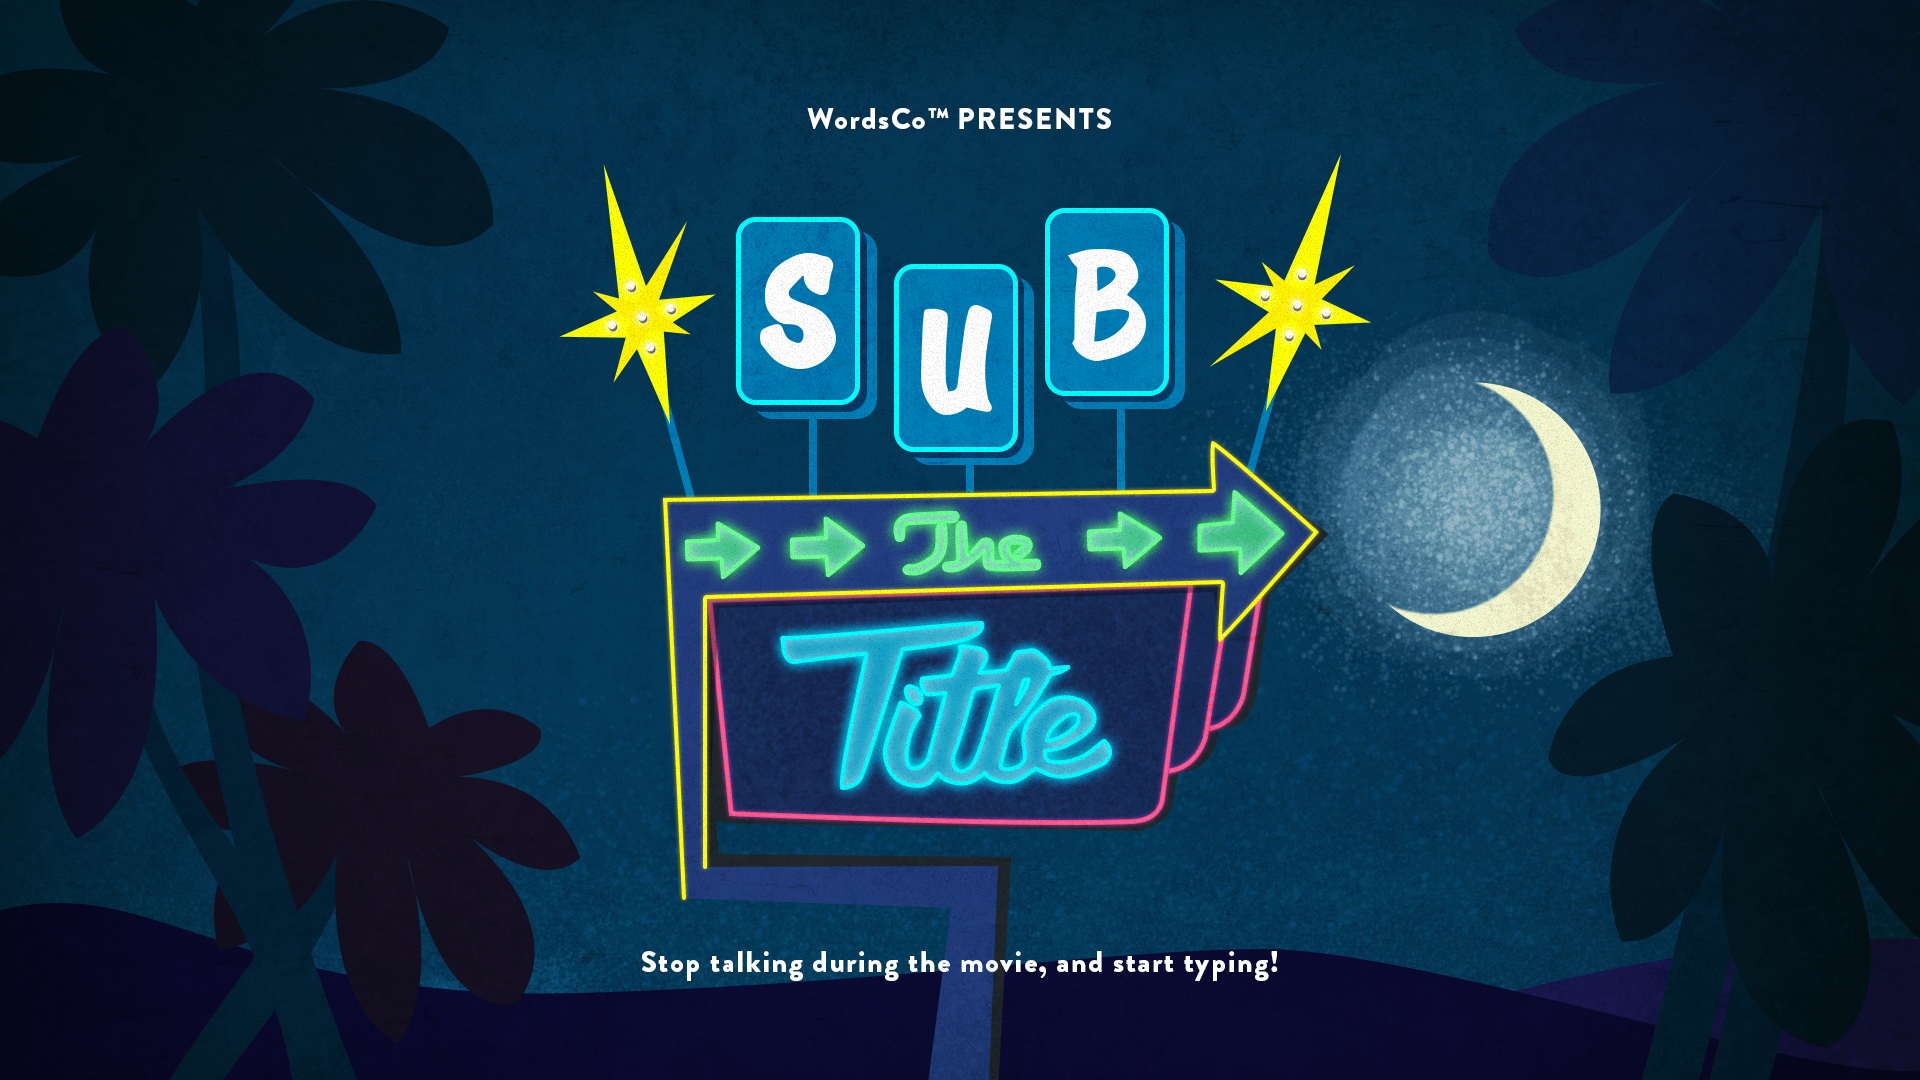 Sub_The_Title_title_screen.png